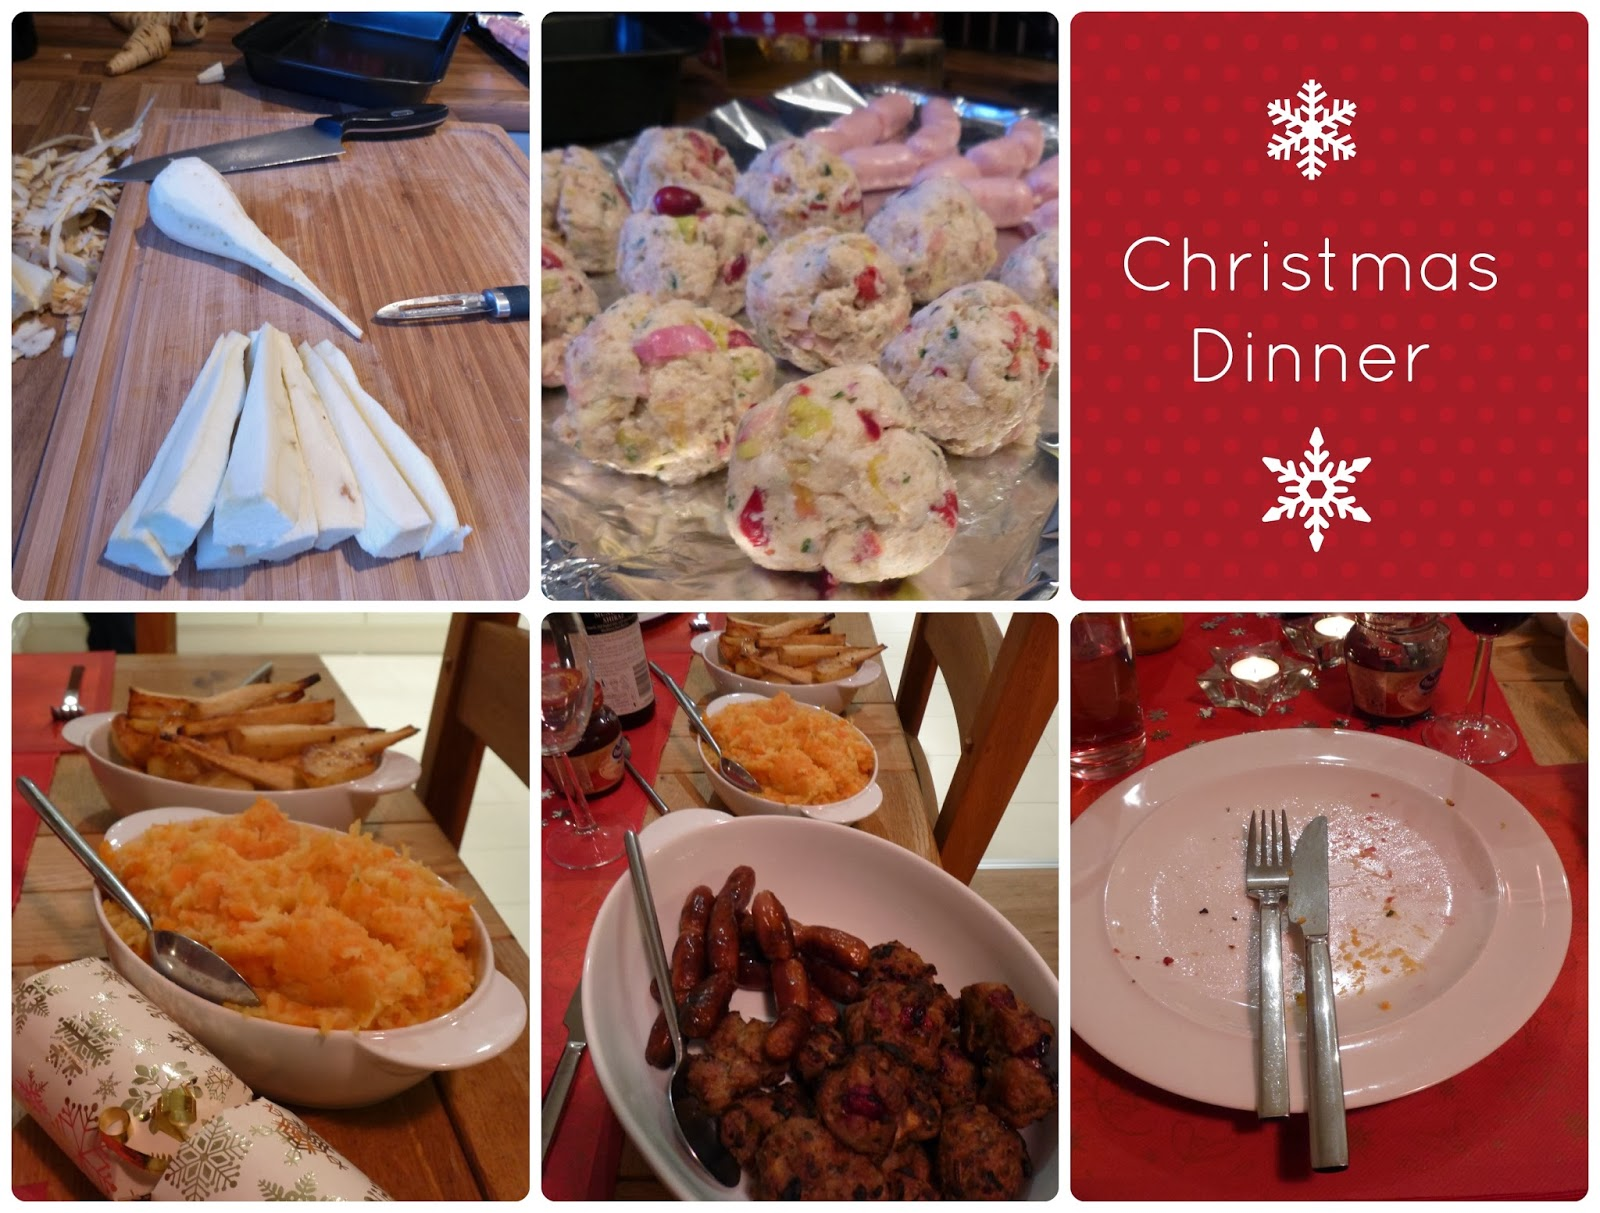 Our Christmas Dinner - Grow Our Own